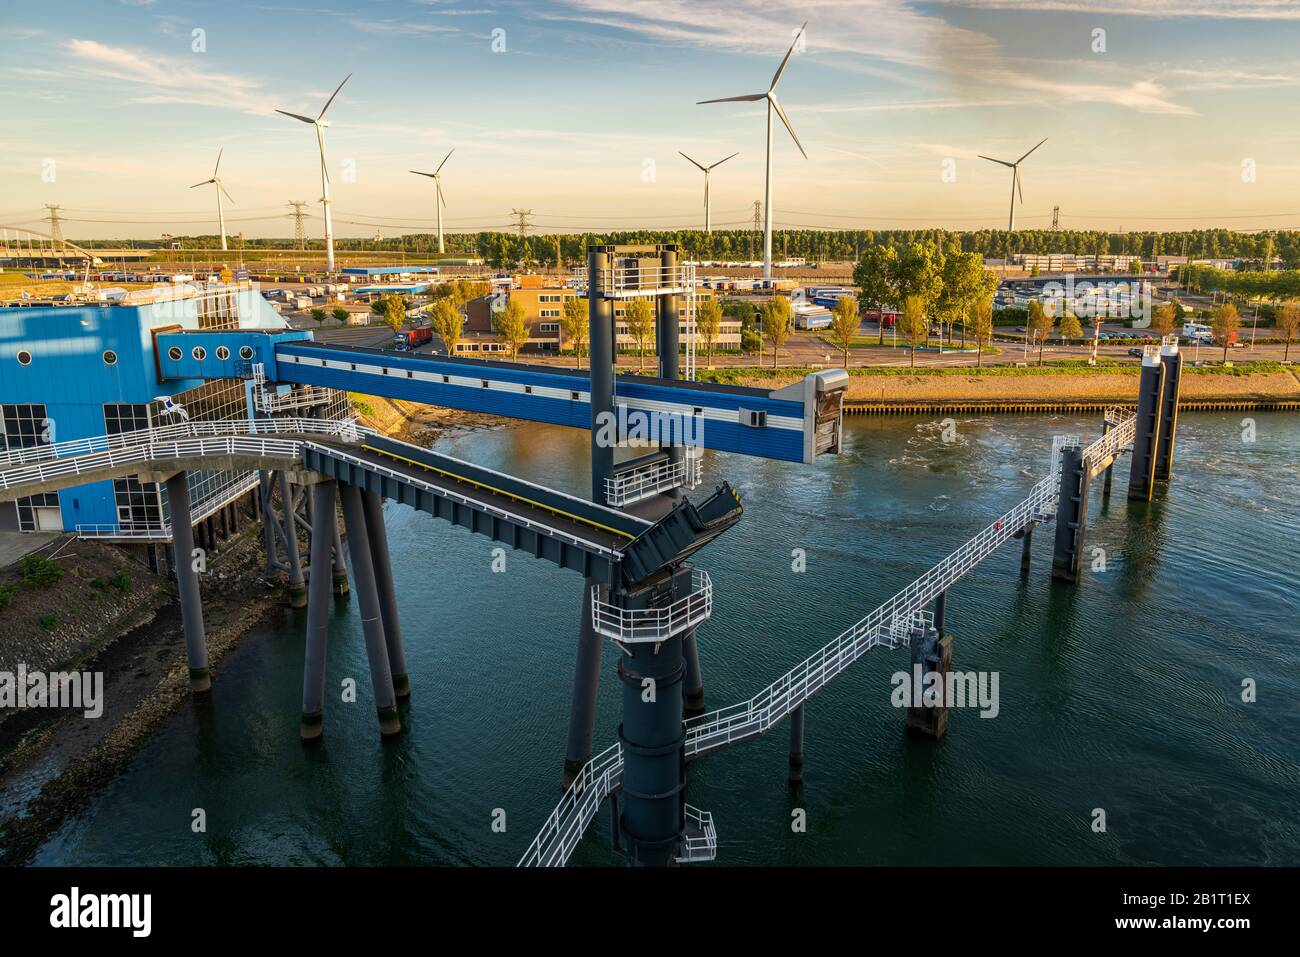 Rotterdam, South Holland, Netherlands - May 13, 2019: The ferry terminal in the Beneluxhaven of Europoort Stock Photo